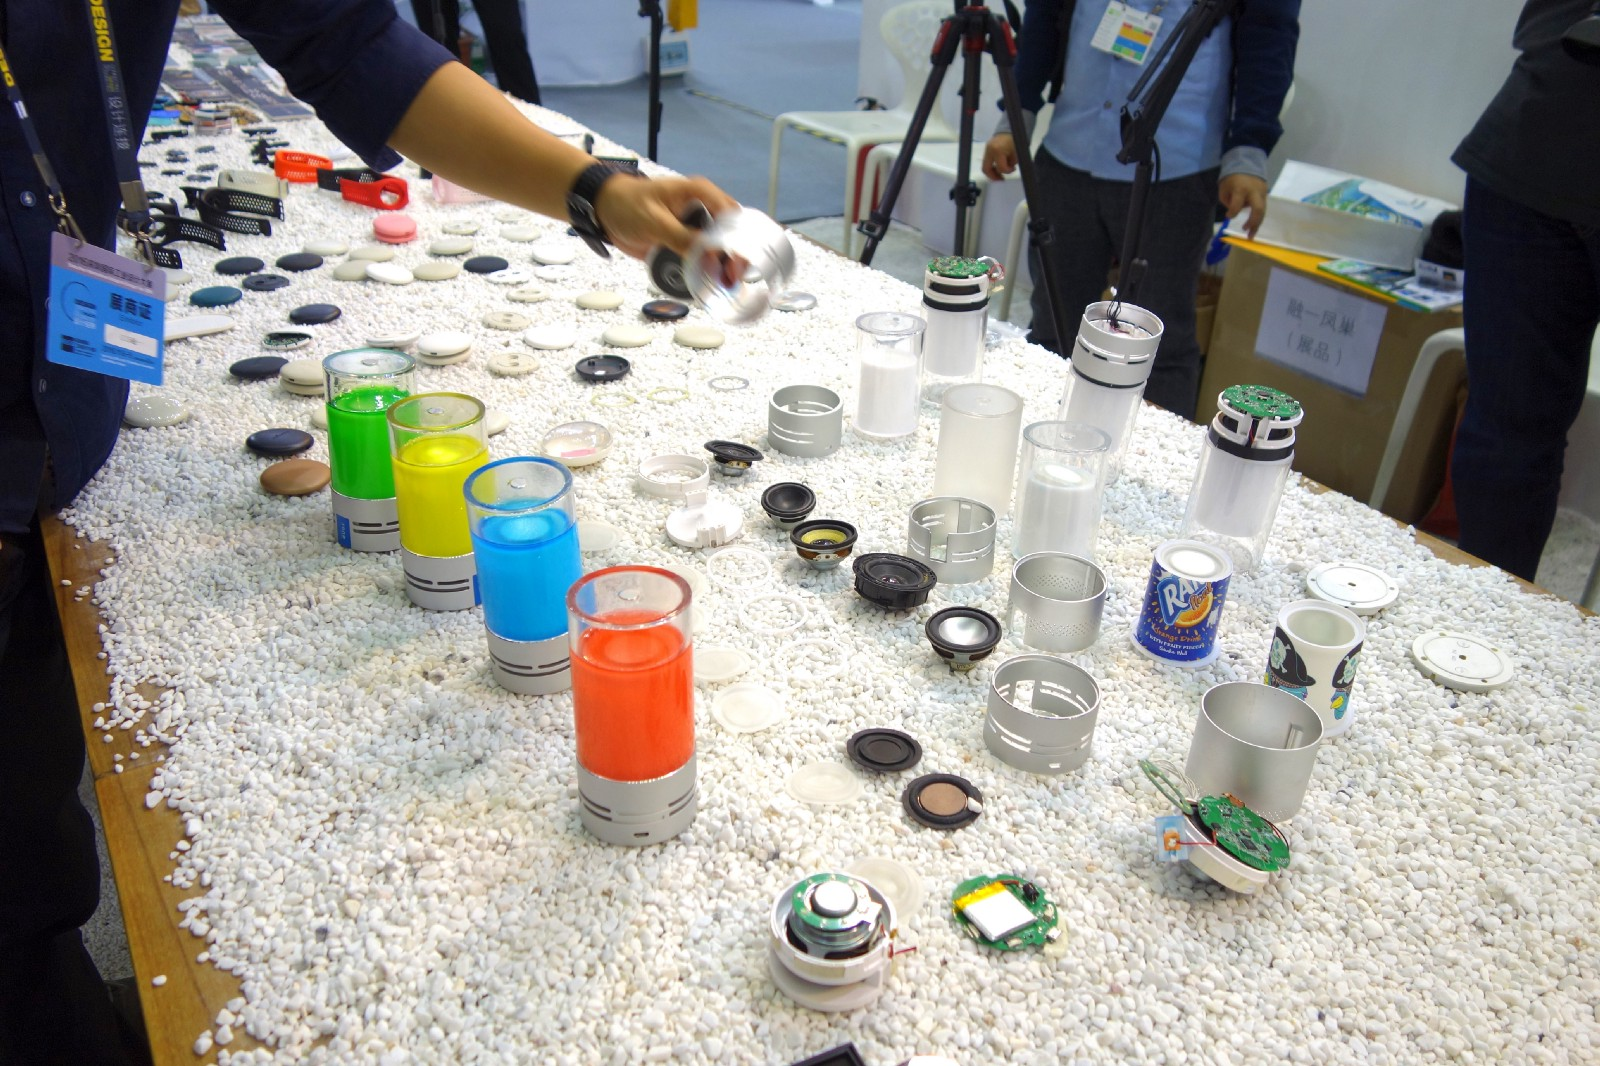 At the Shenzhen Industrial Design Fair (Nov 2016), a design house showed the components that make up some connected products. Image: Peter Bihr (CC by-nc-sa)